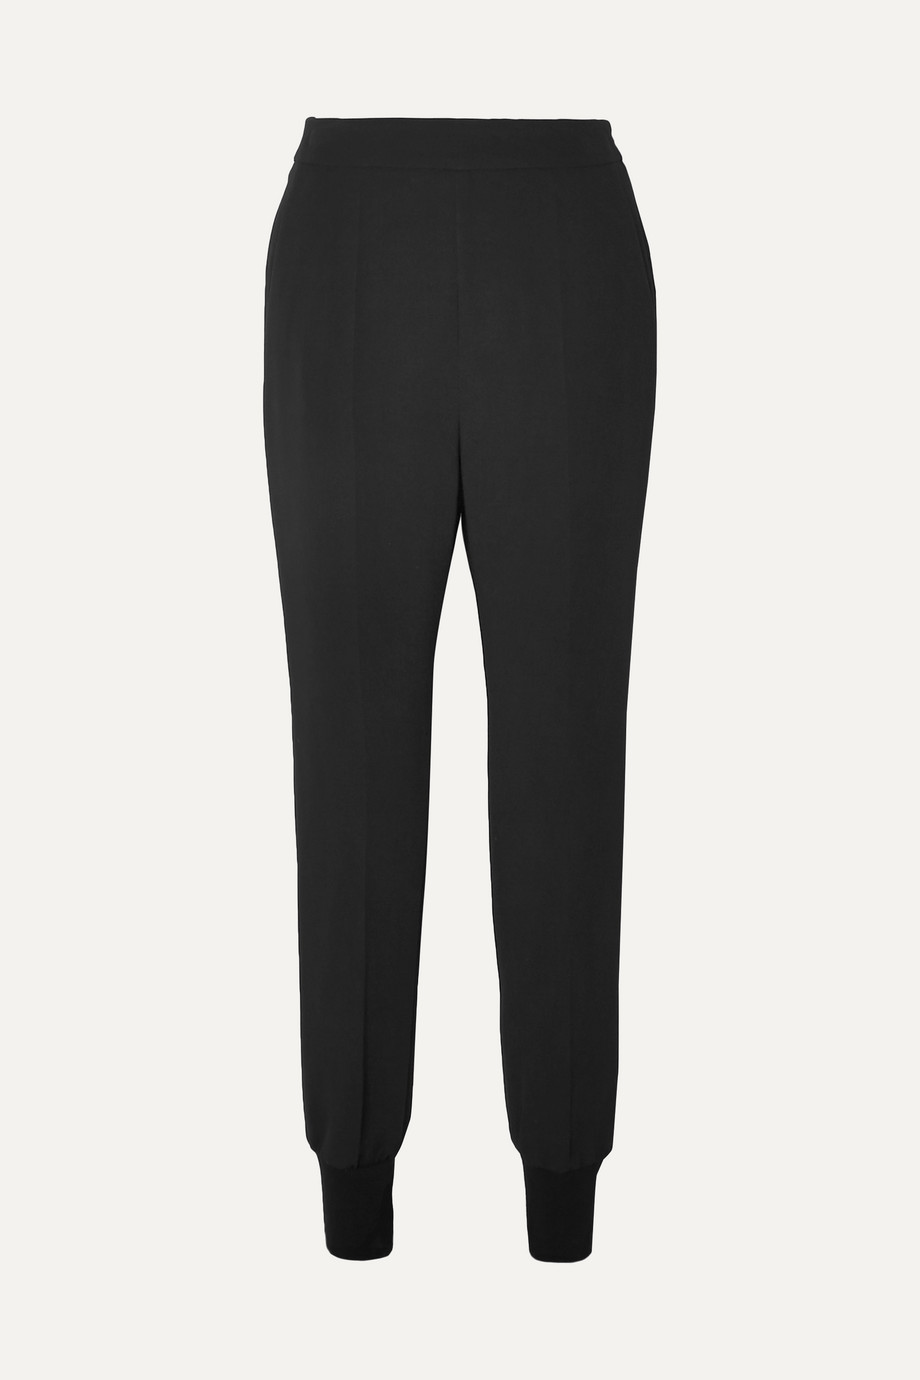 Stella McCartney Julia stretch-cady track pants